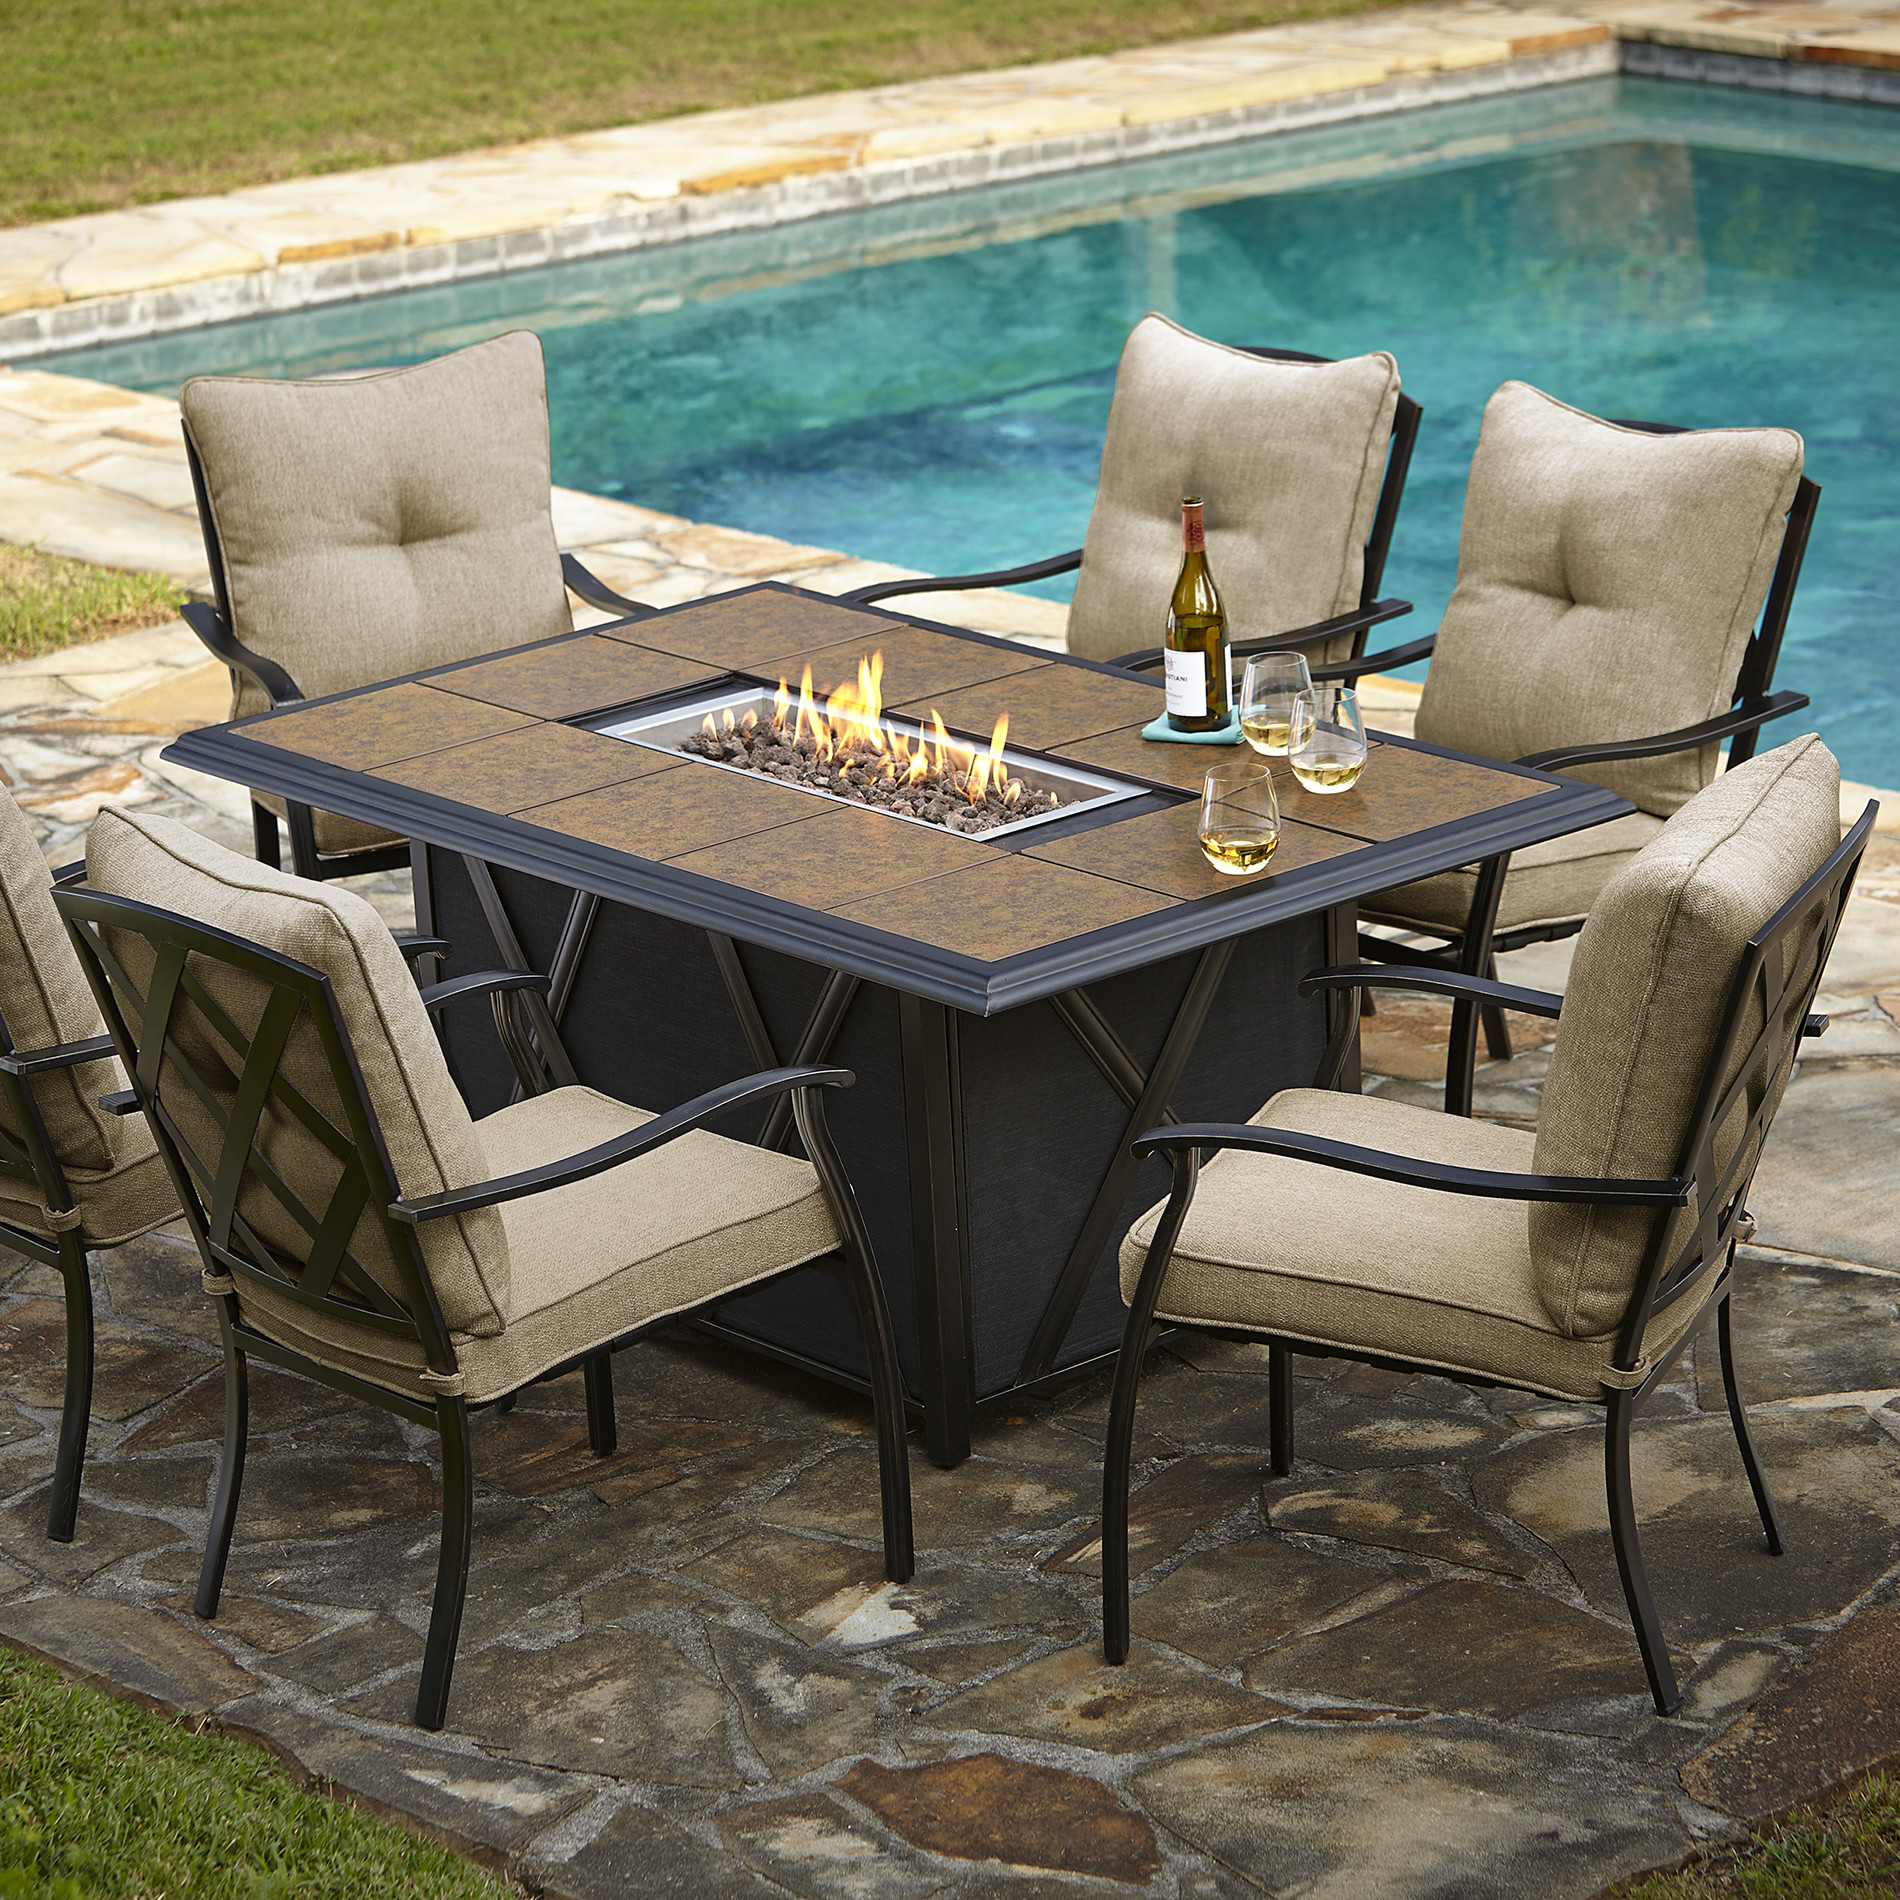 Best ideas about Fire Pit Dining Table . Save or Pin $1314 99 Grand Resort Wildwood 7pc LP Fire Pit Dining Set Now.